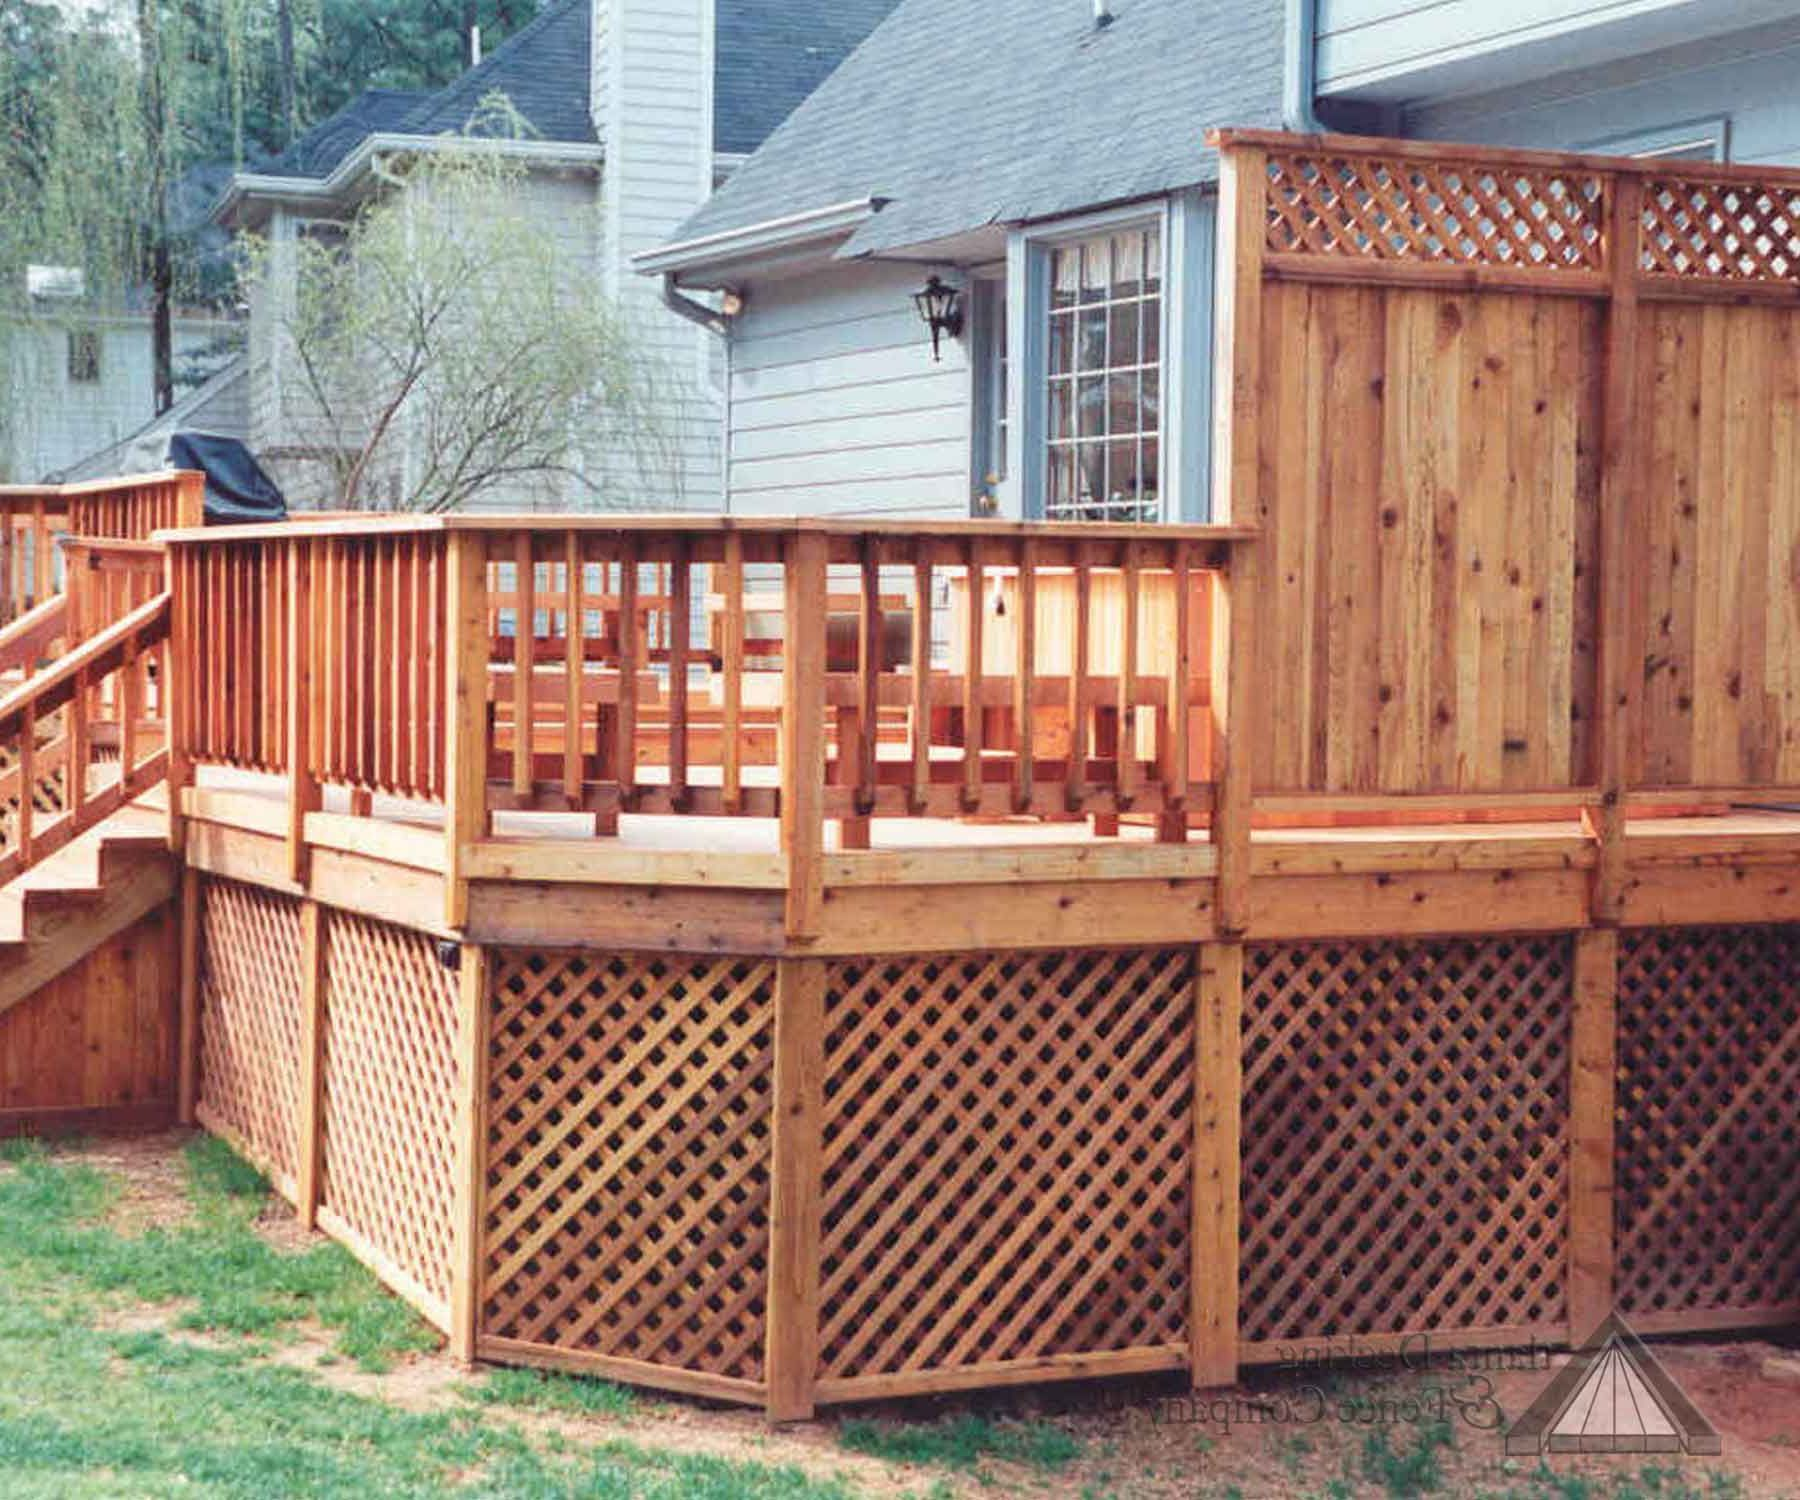 Privacy Screen Made of Wood for Deck Idea Attractive Deck Ideas